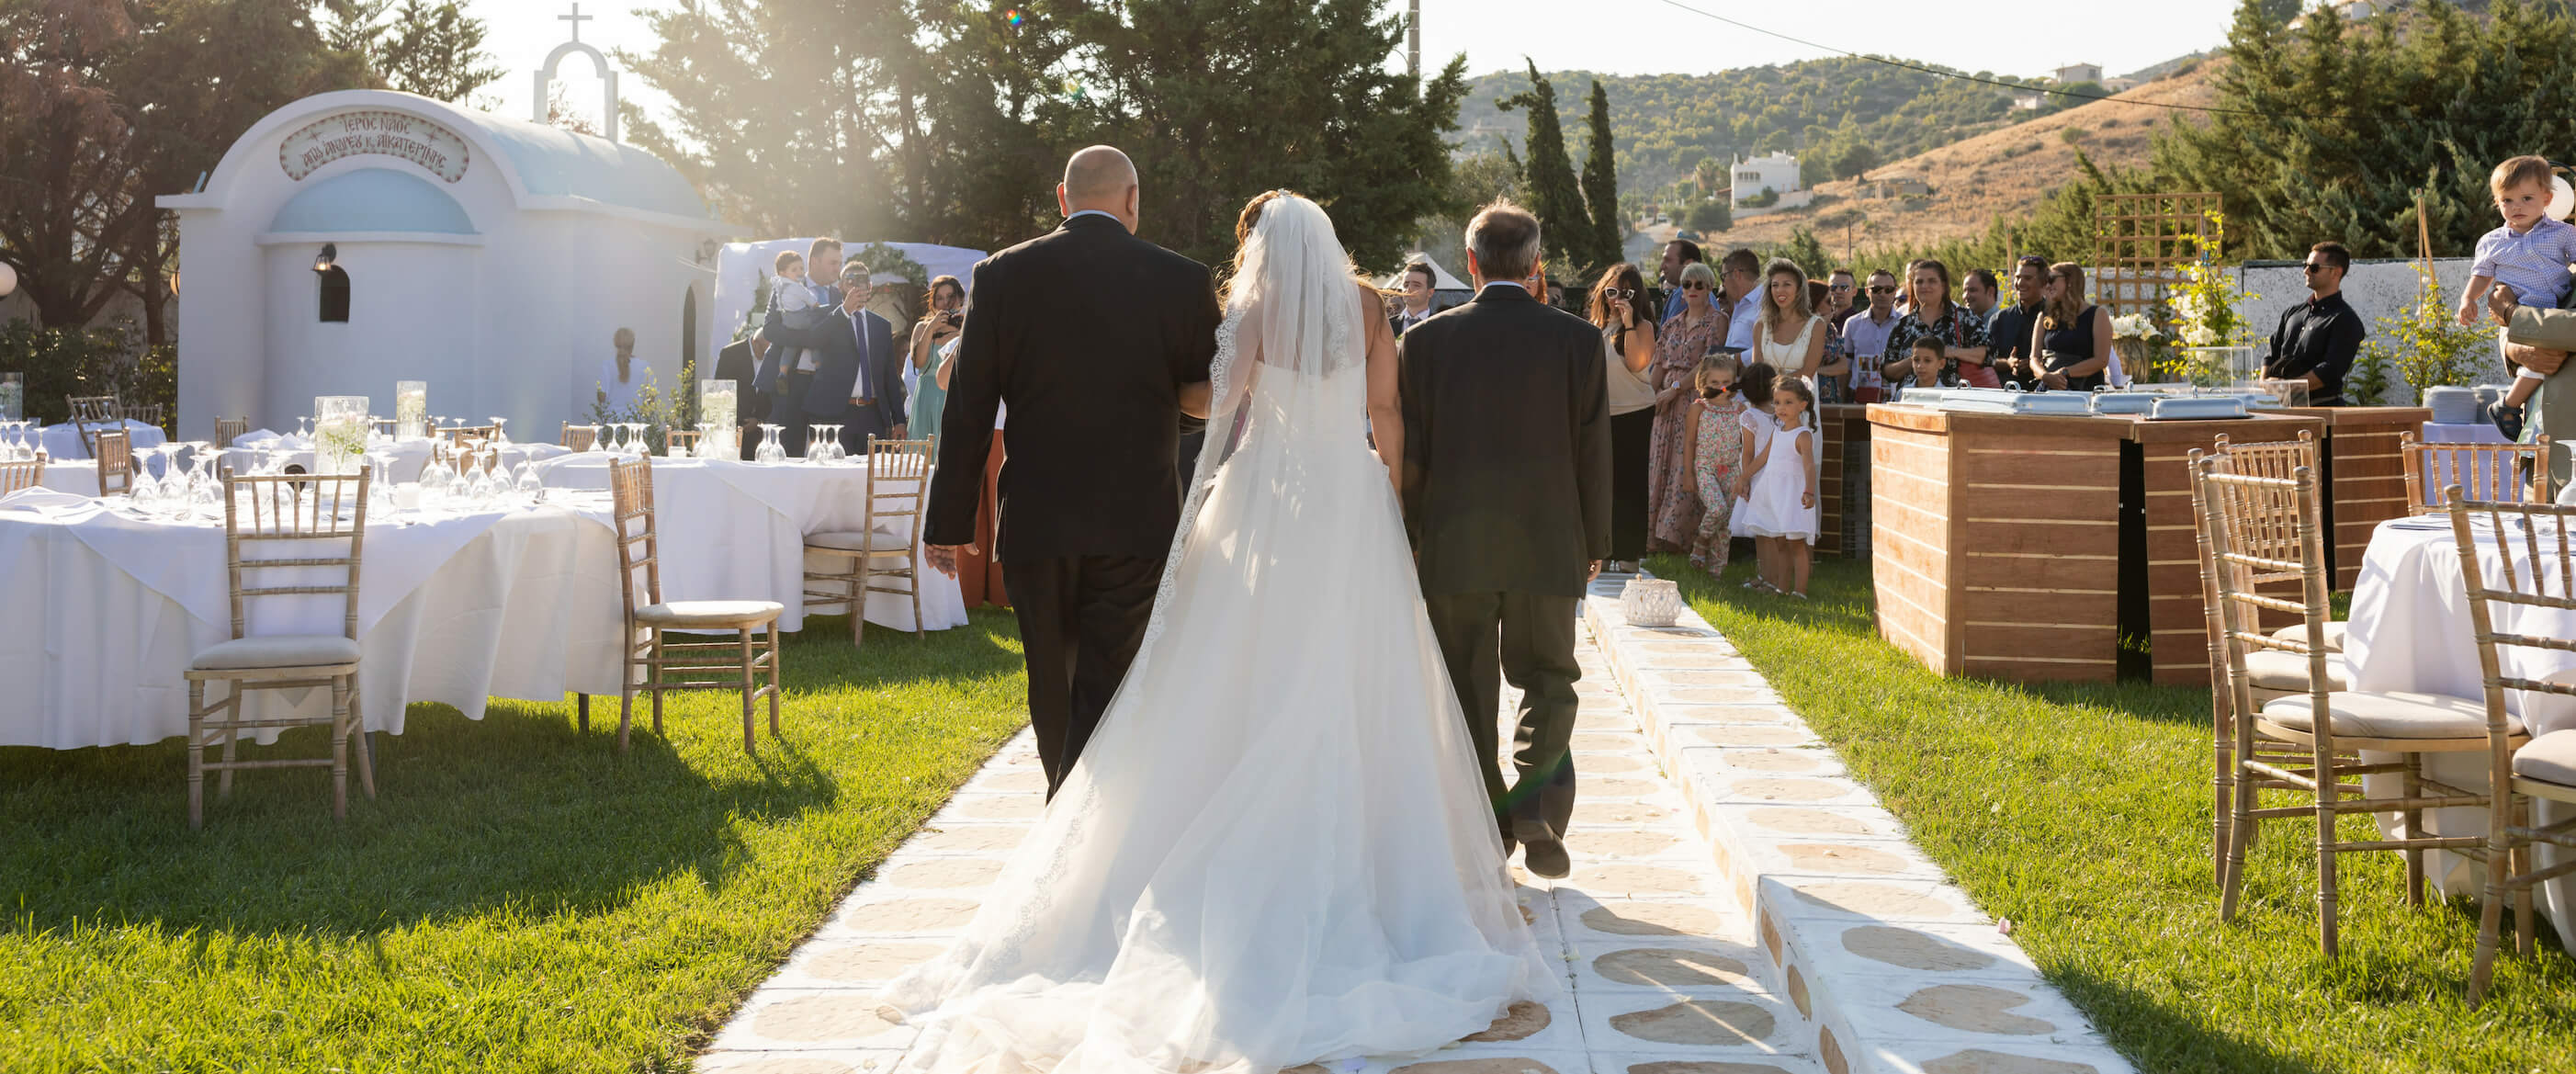 Real Weddings στο Κτήμα The Glam